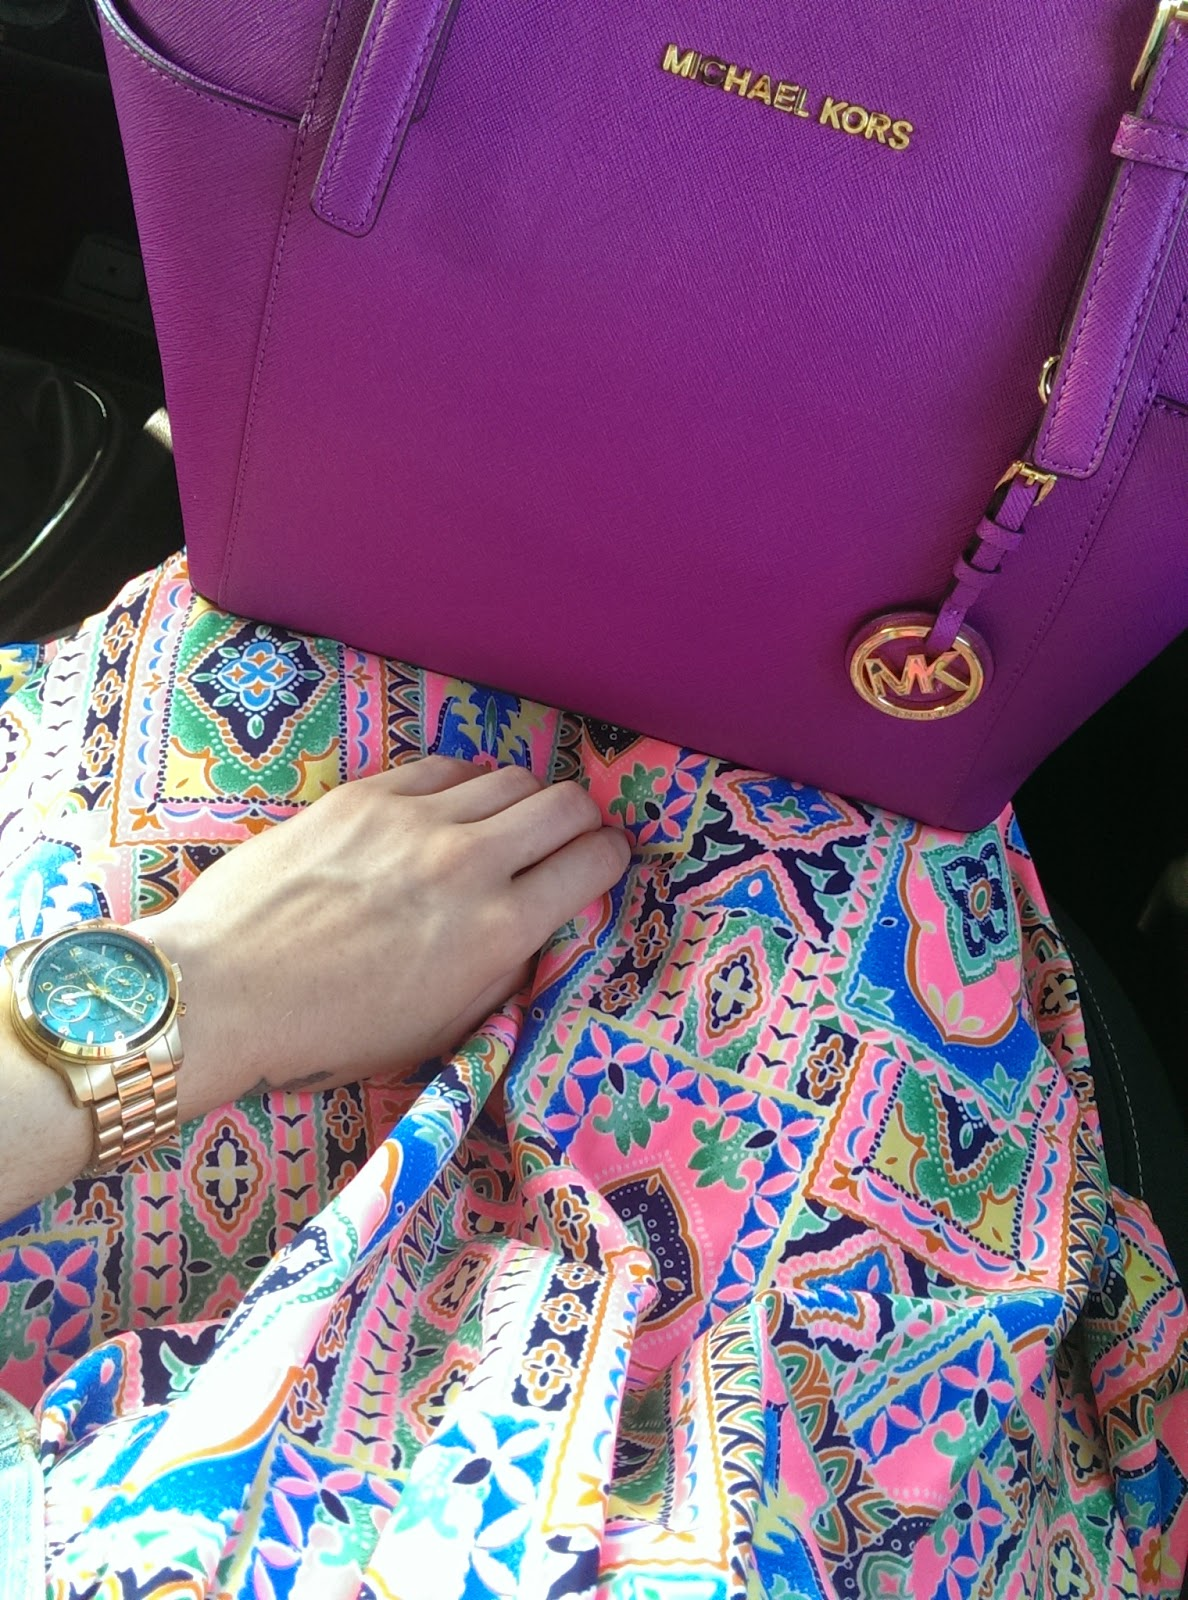 Primark playsuit michael kors handbag and michael kors watch